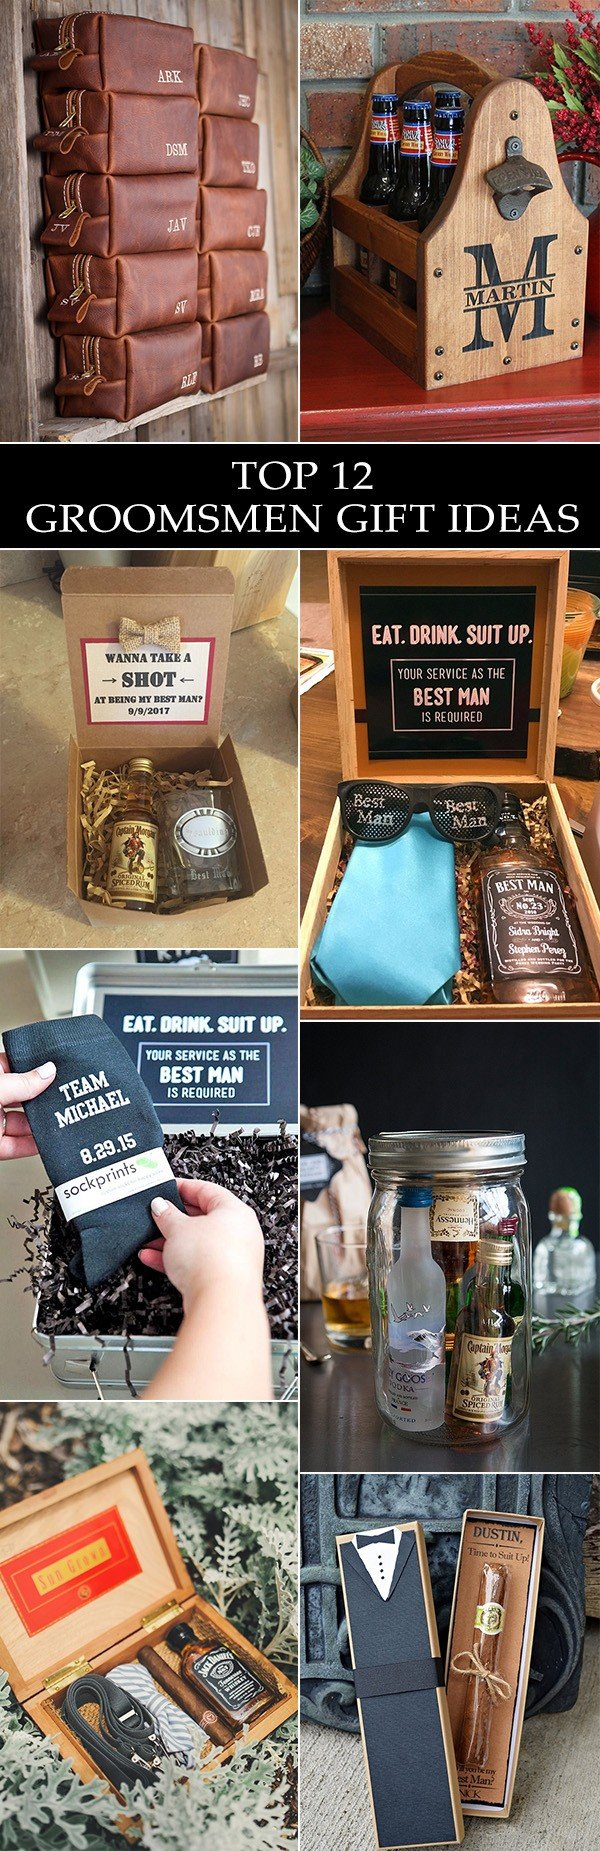 trending groomsmen gift ideas for 2018